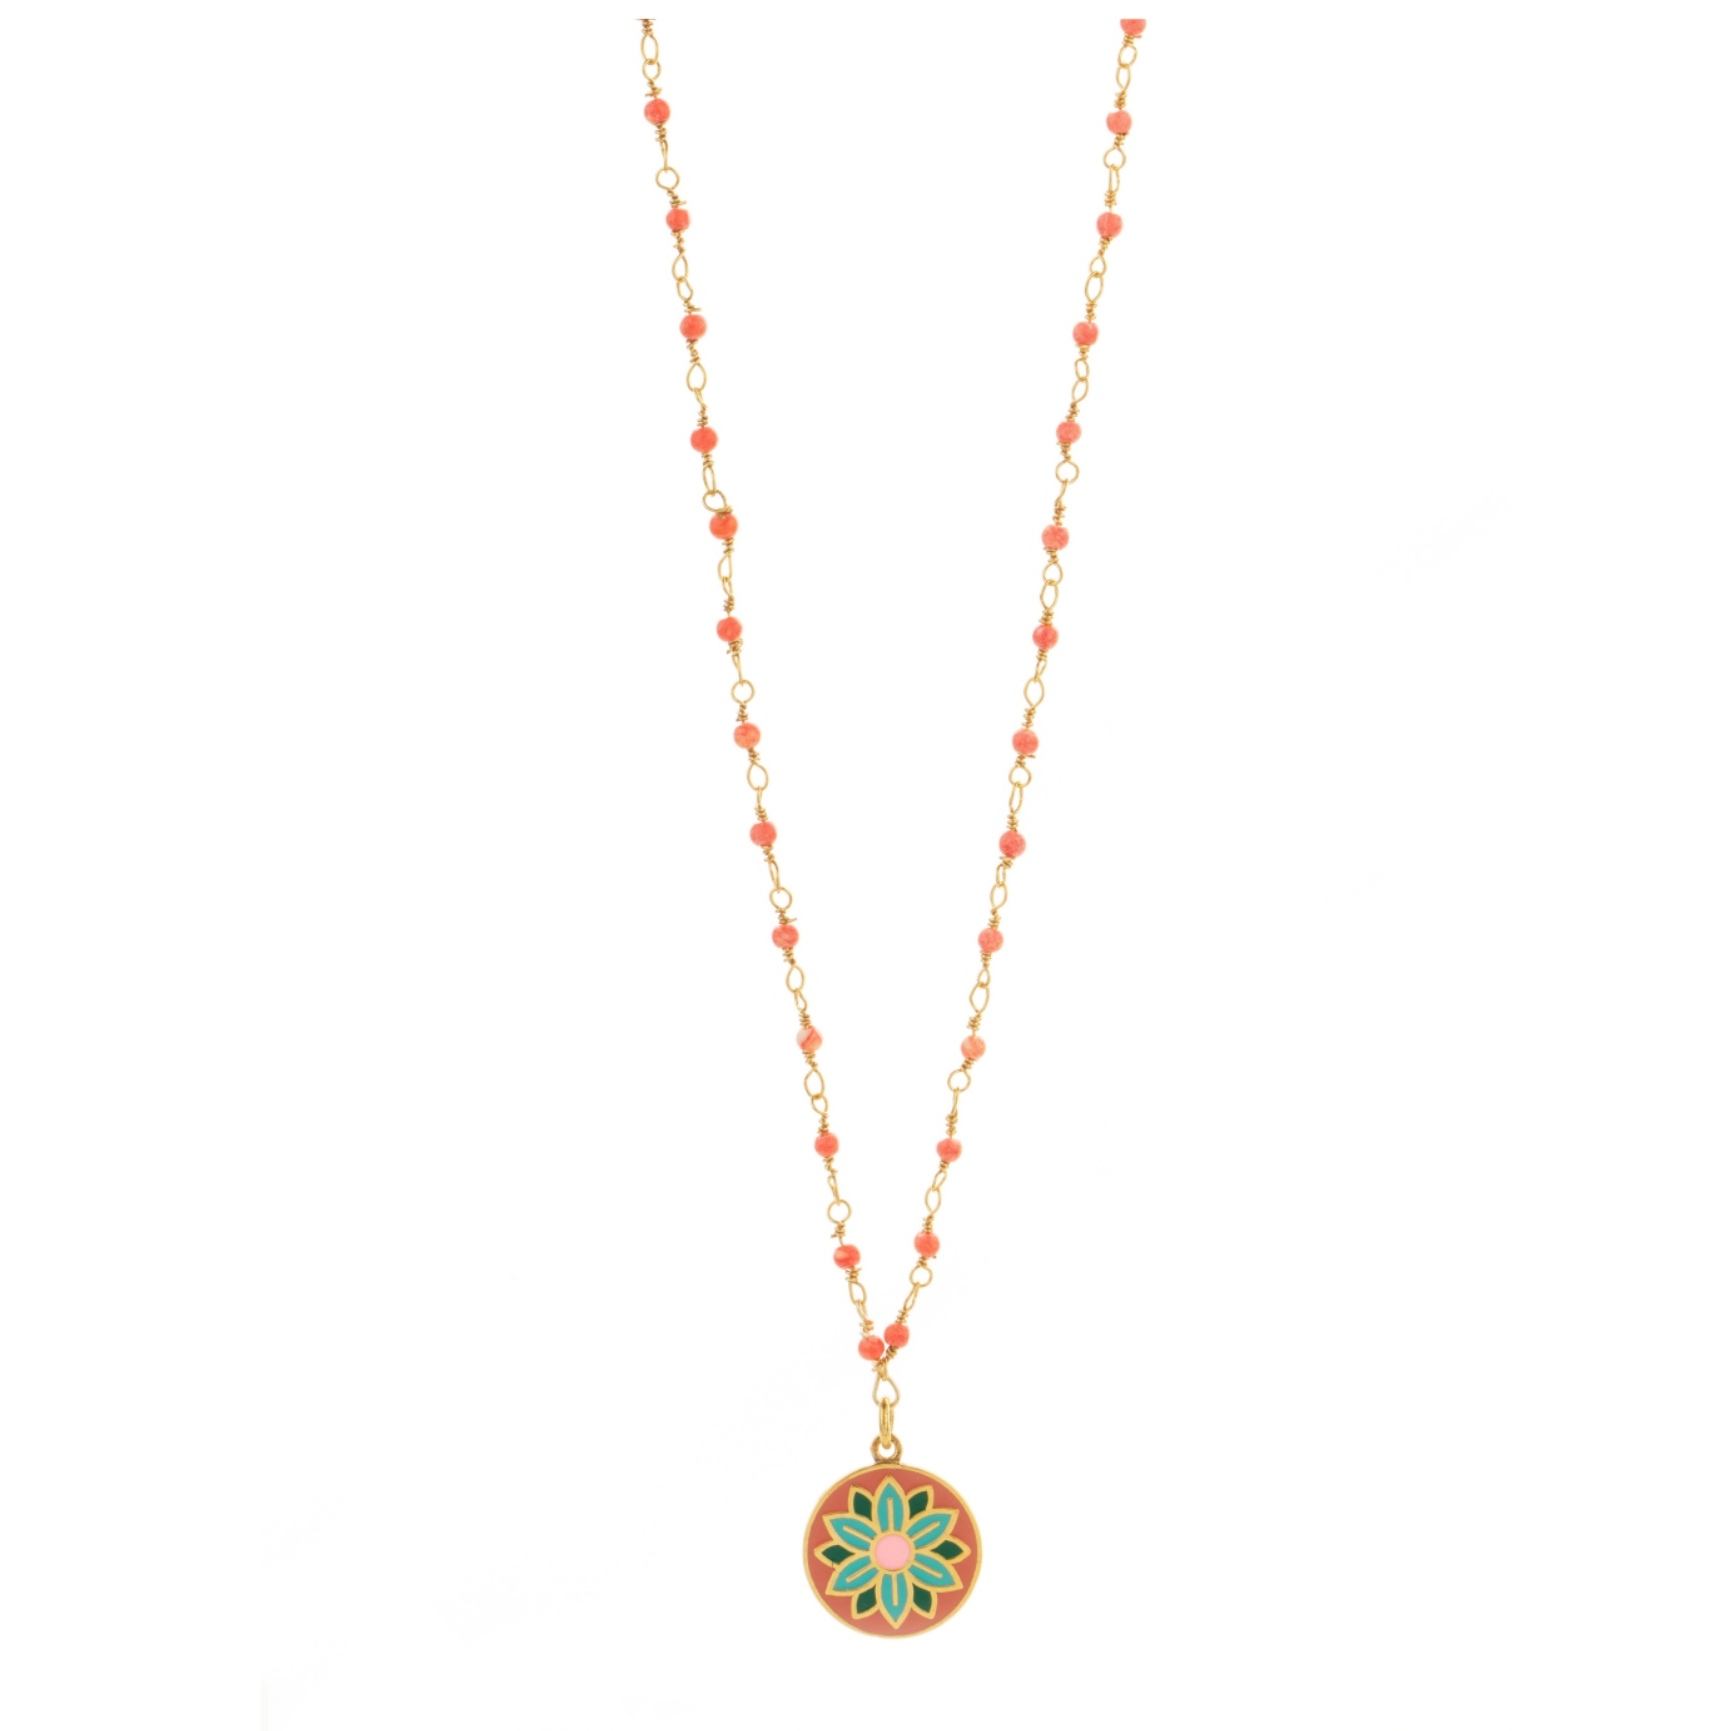 Une a Une - Necklace Jaipur Coral